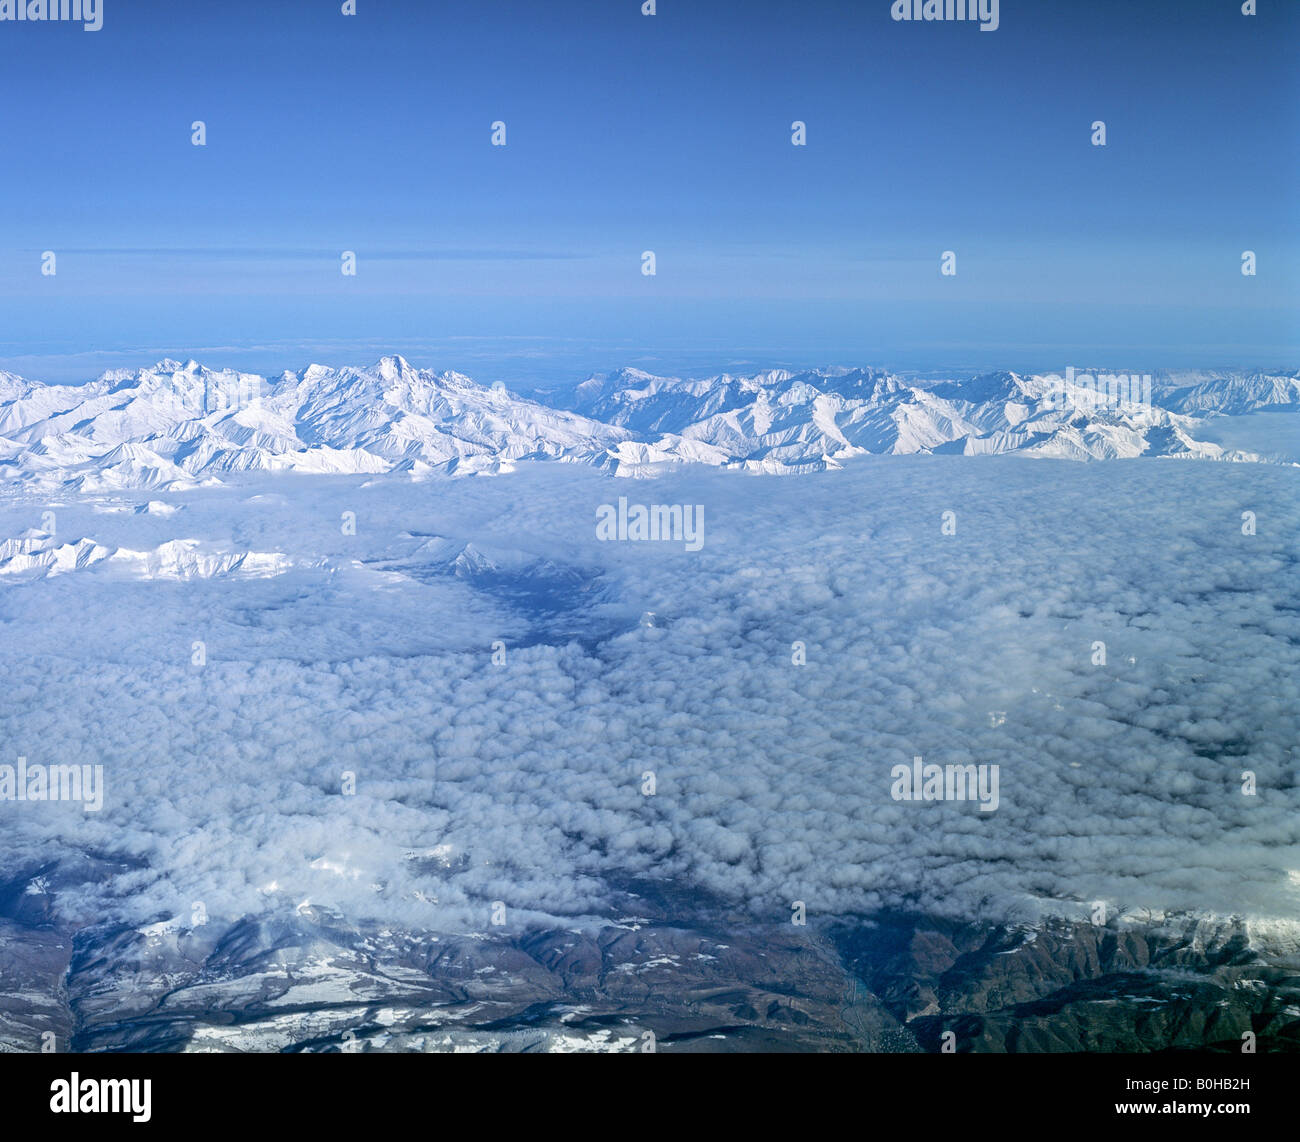 Lesser Caucasus, aerial view from a height of 10 000 m, Azerbaijan, Russia - Stock Image